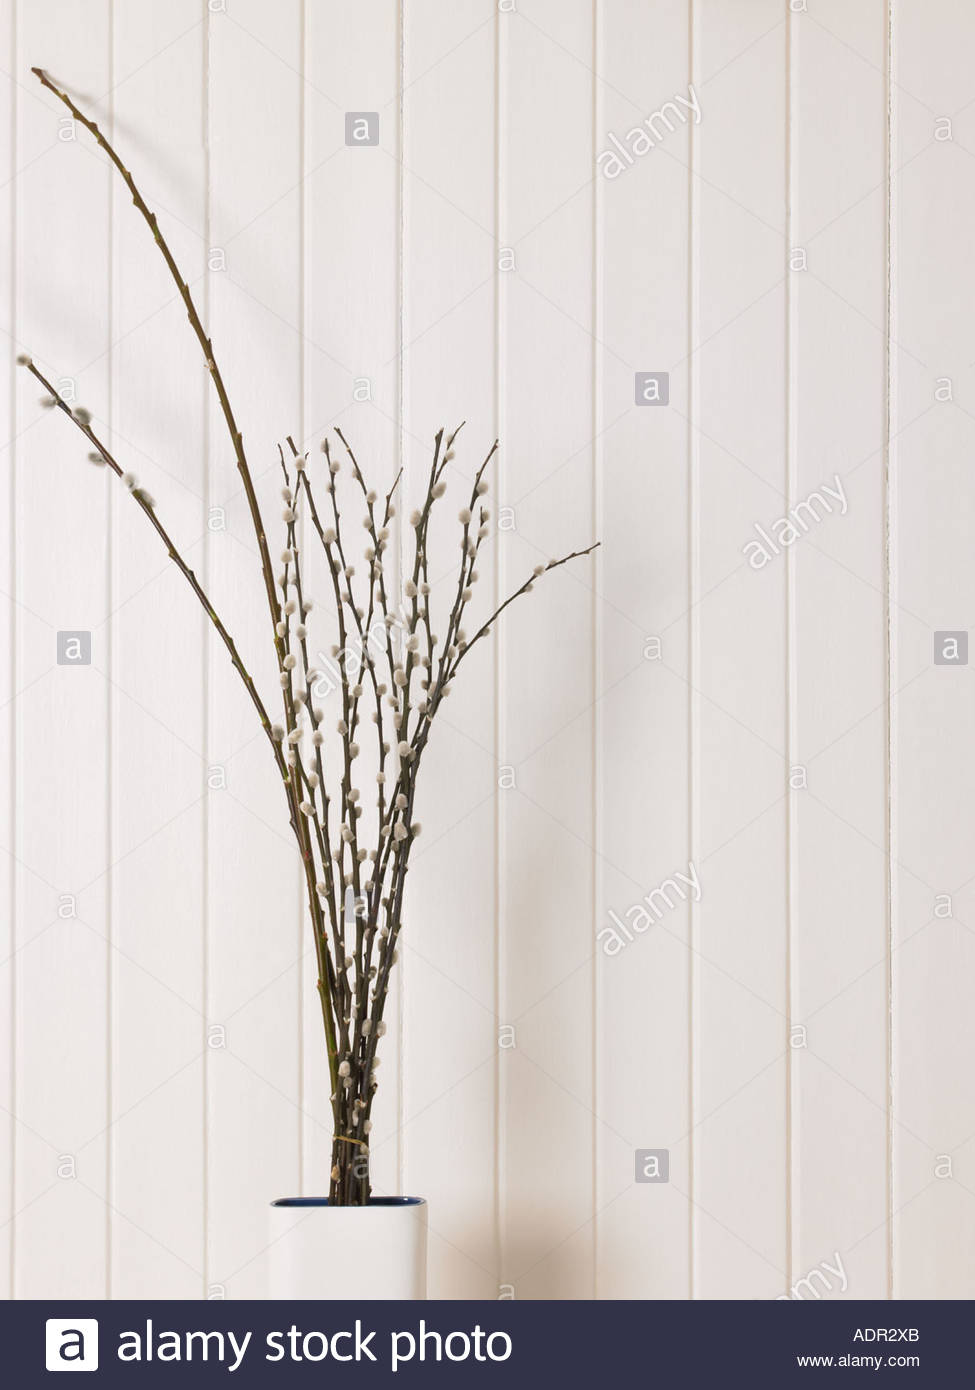 Decorative twigs in a vase - Stock Image